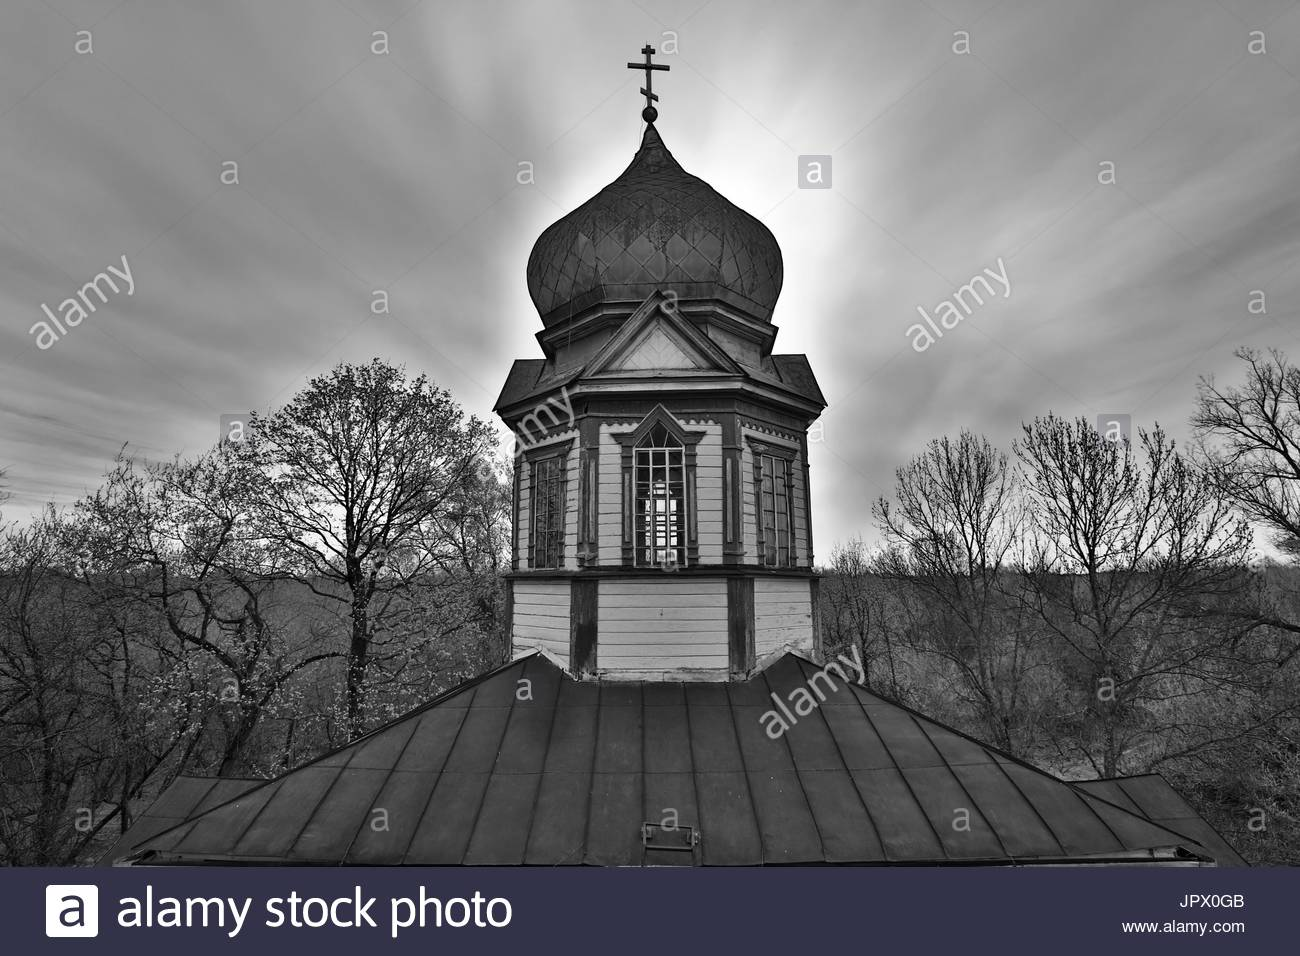 Bell tower of an abandoned church - Chernobyl Area Ukraine - Stock Image